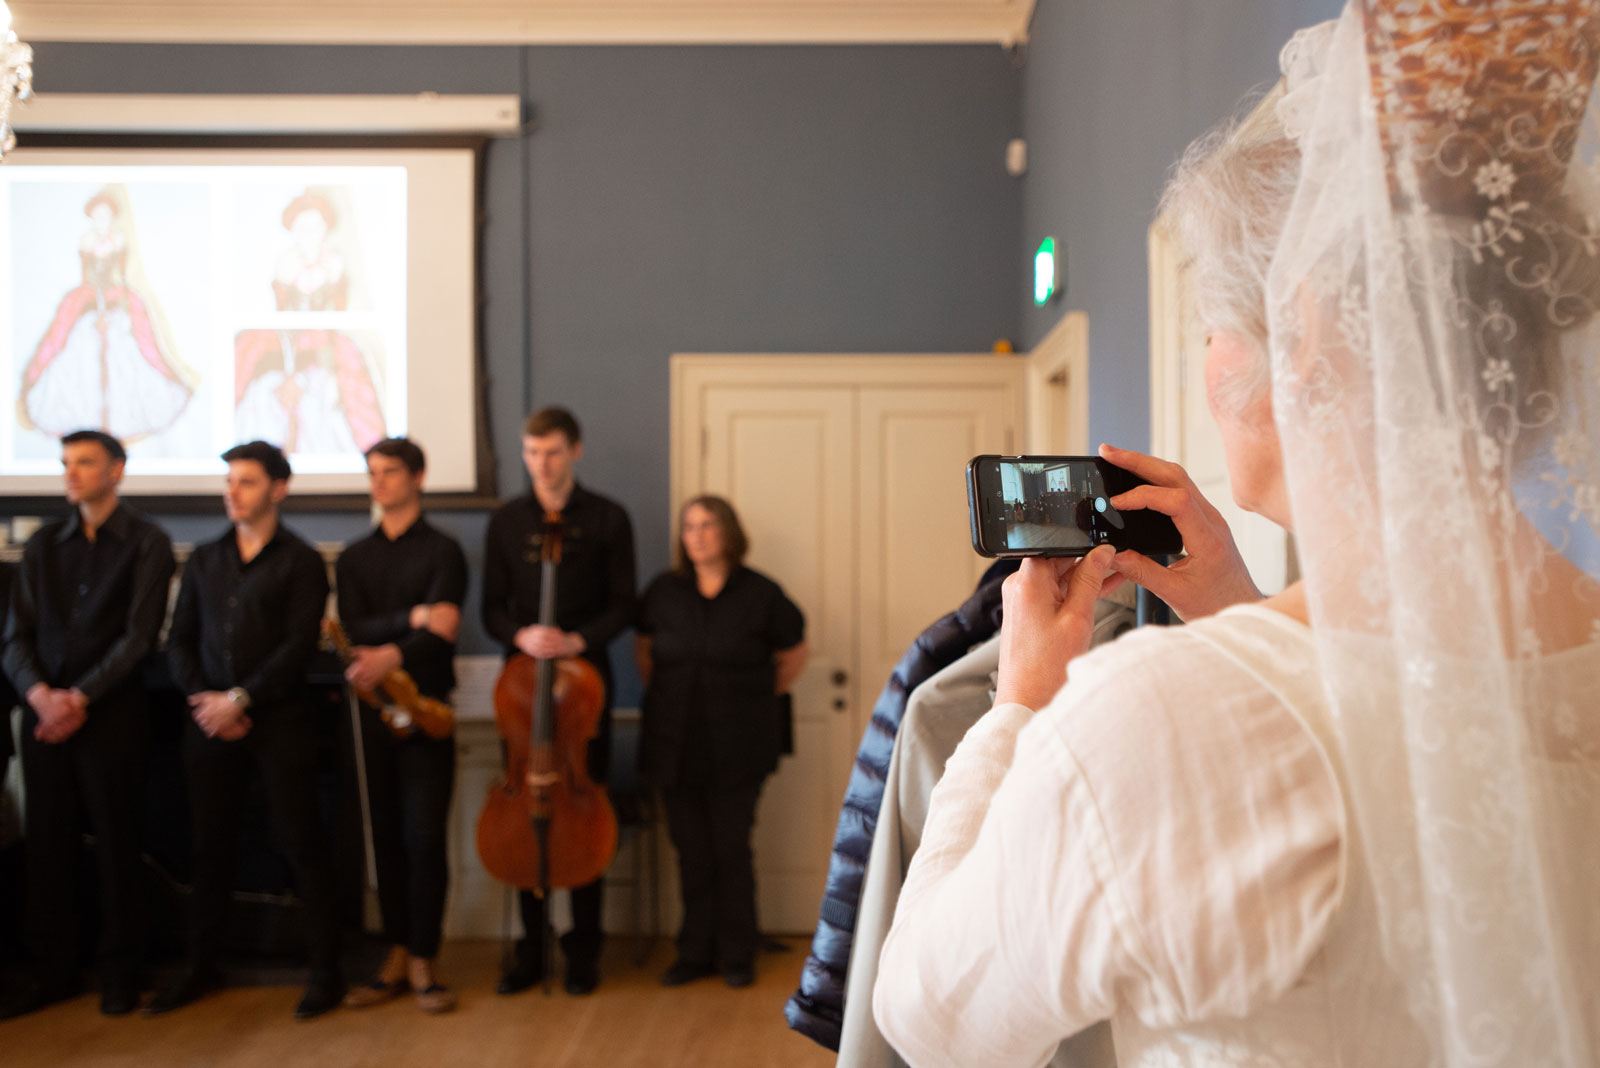 A performer takes a video of musicians on their mobile phone